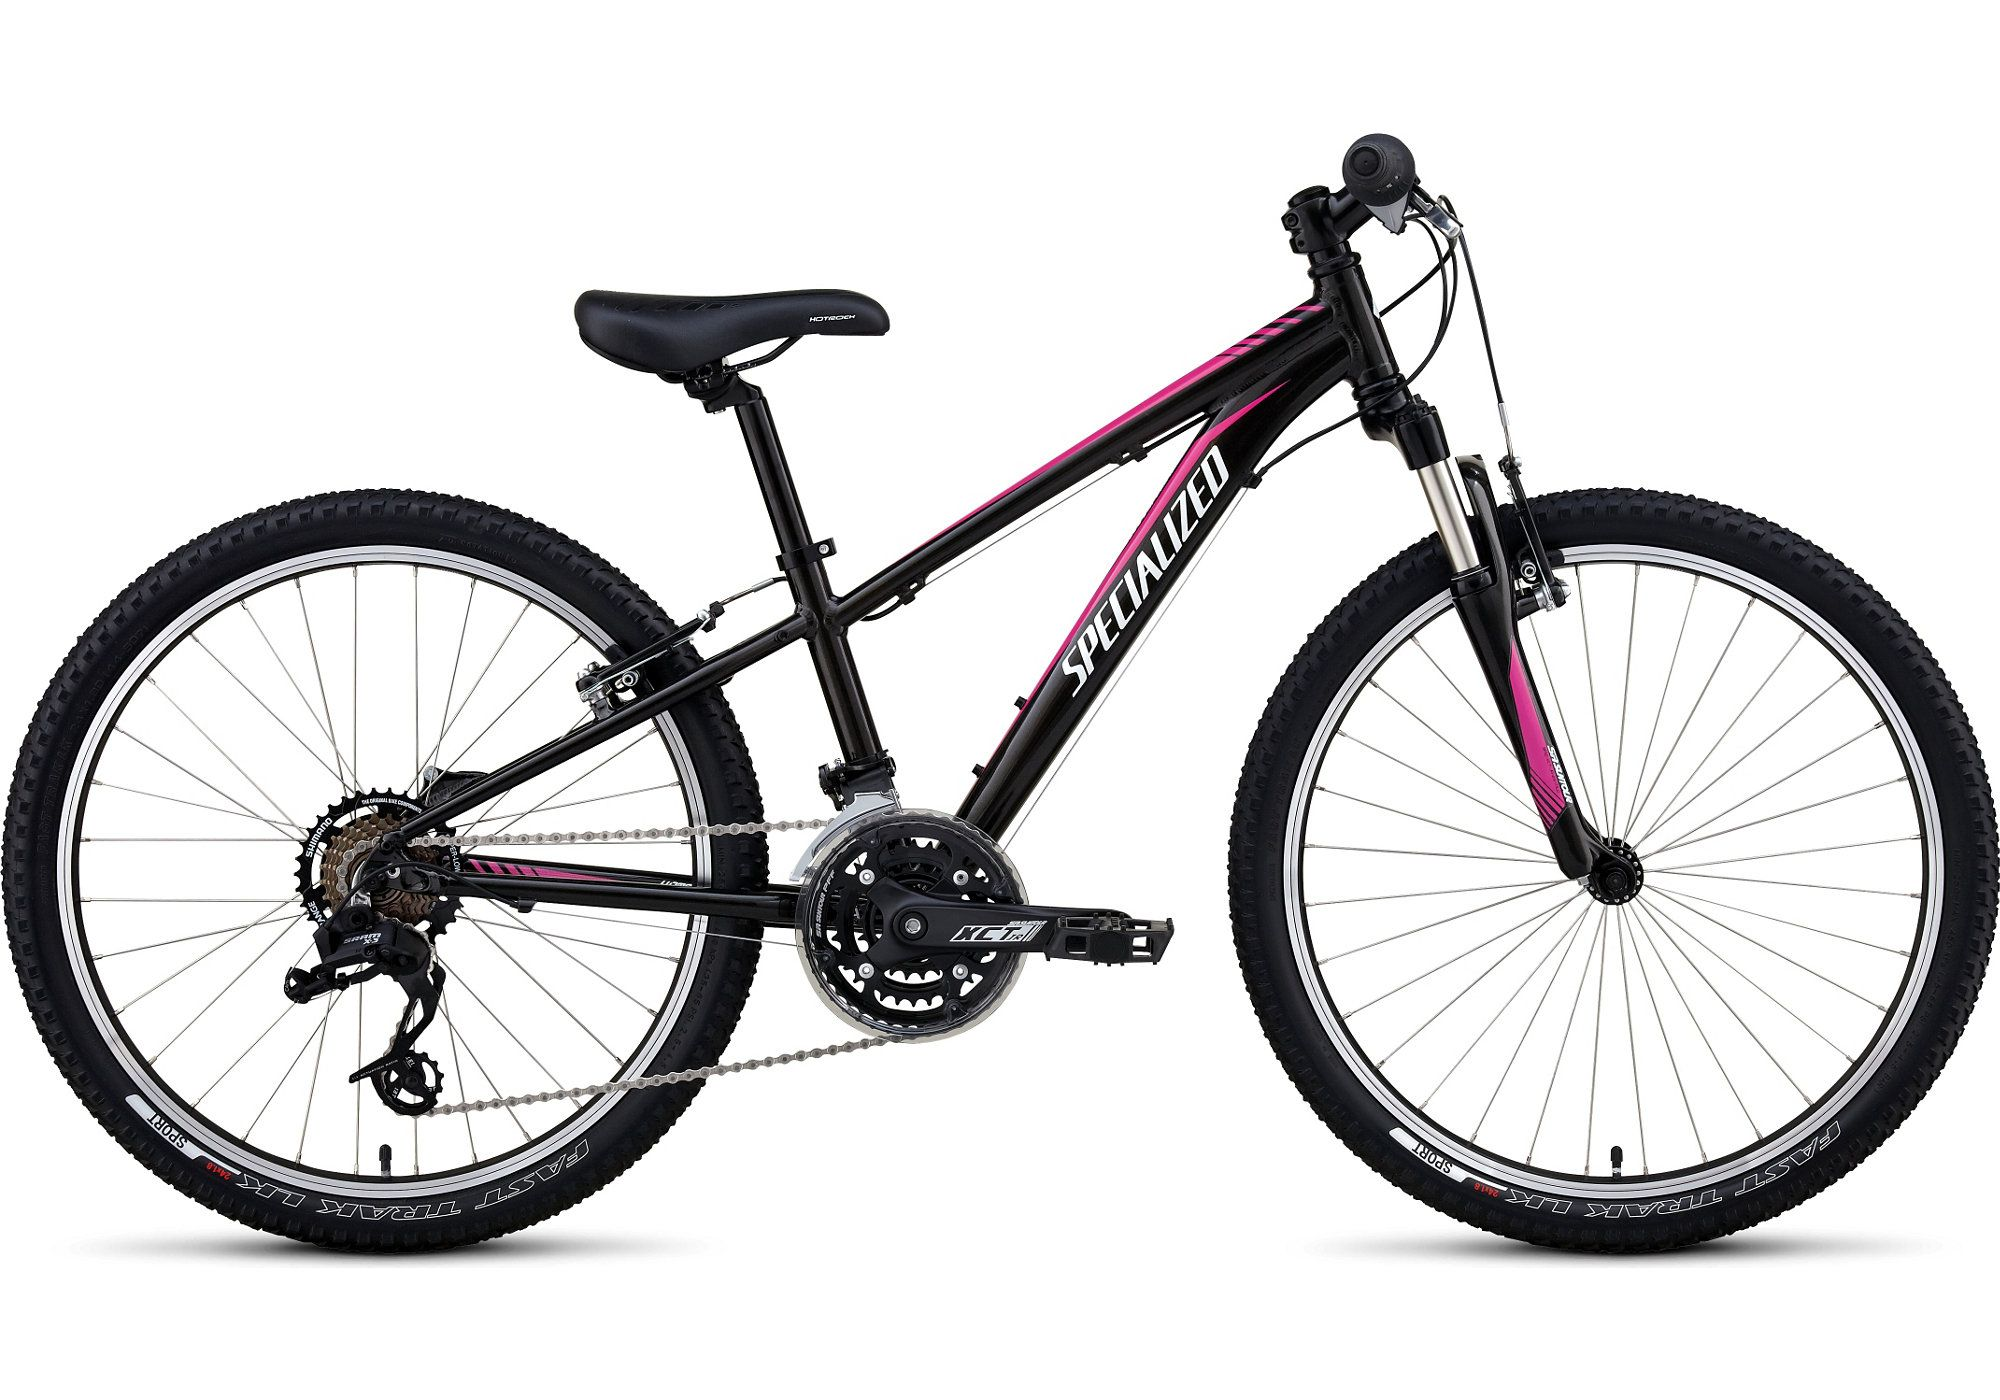 Велосипед Specialized Hotrock 24 XC girl 2016 велосипед specialized sirrus elite 2015